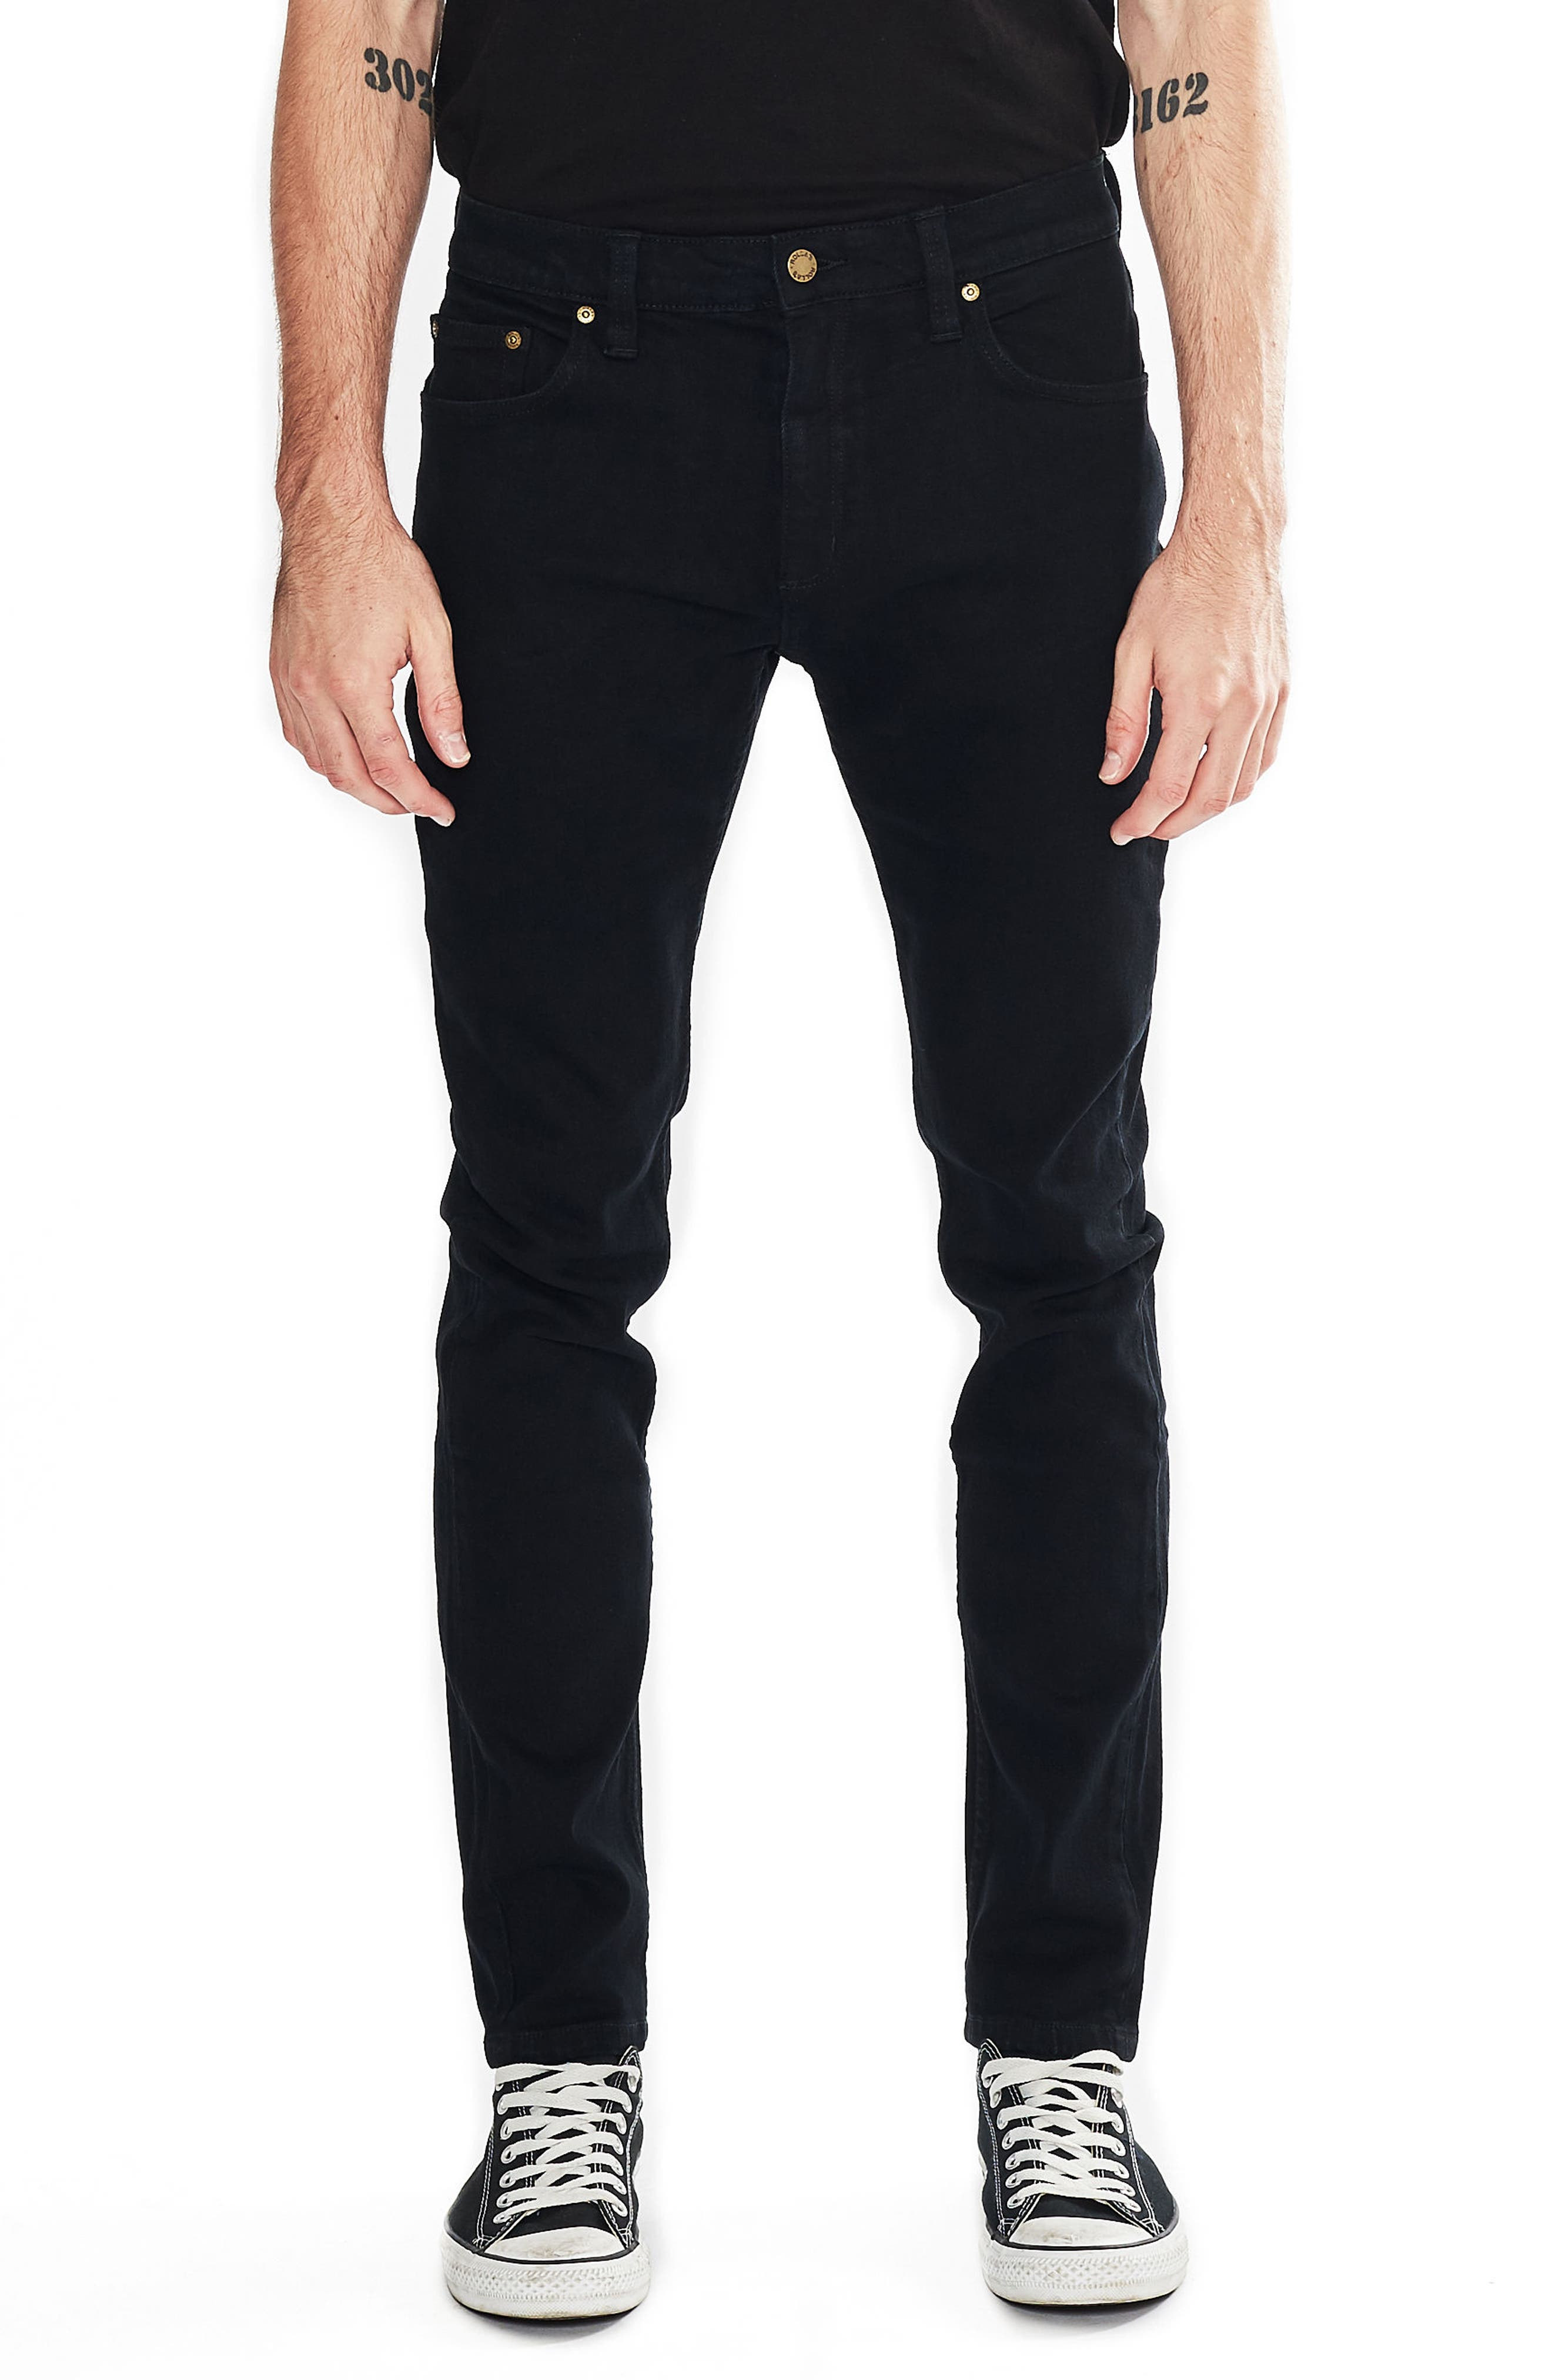 Thin Captain Slim Fit Jeans,                             Main thumbnail 1, color,                             Bon Black